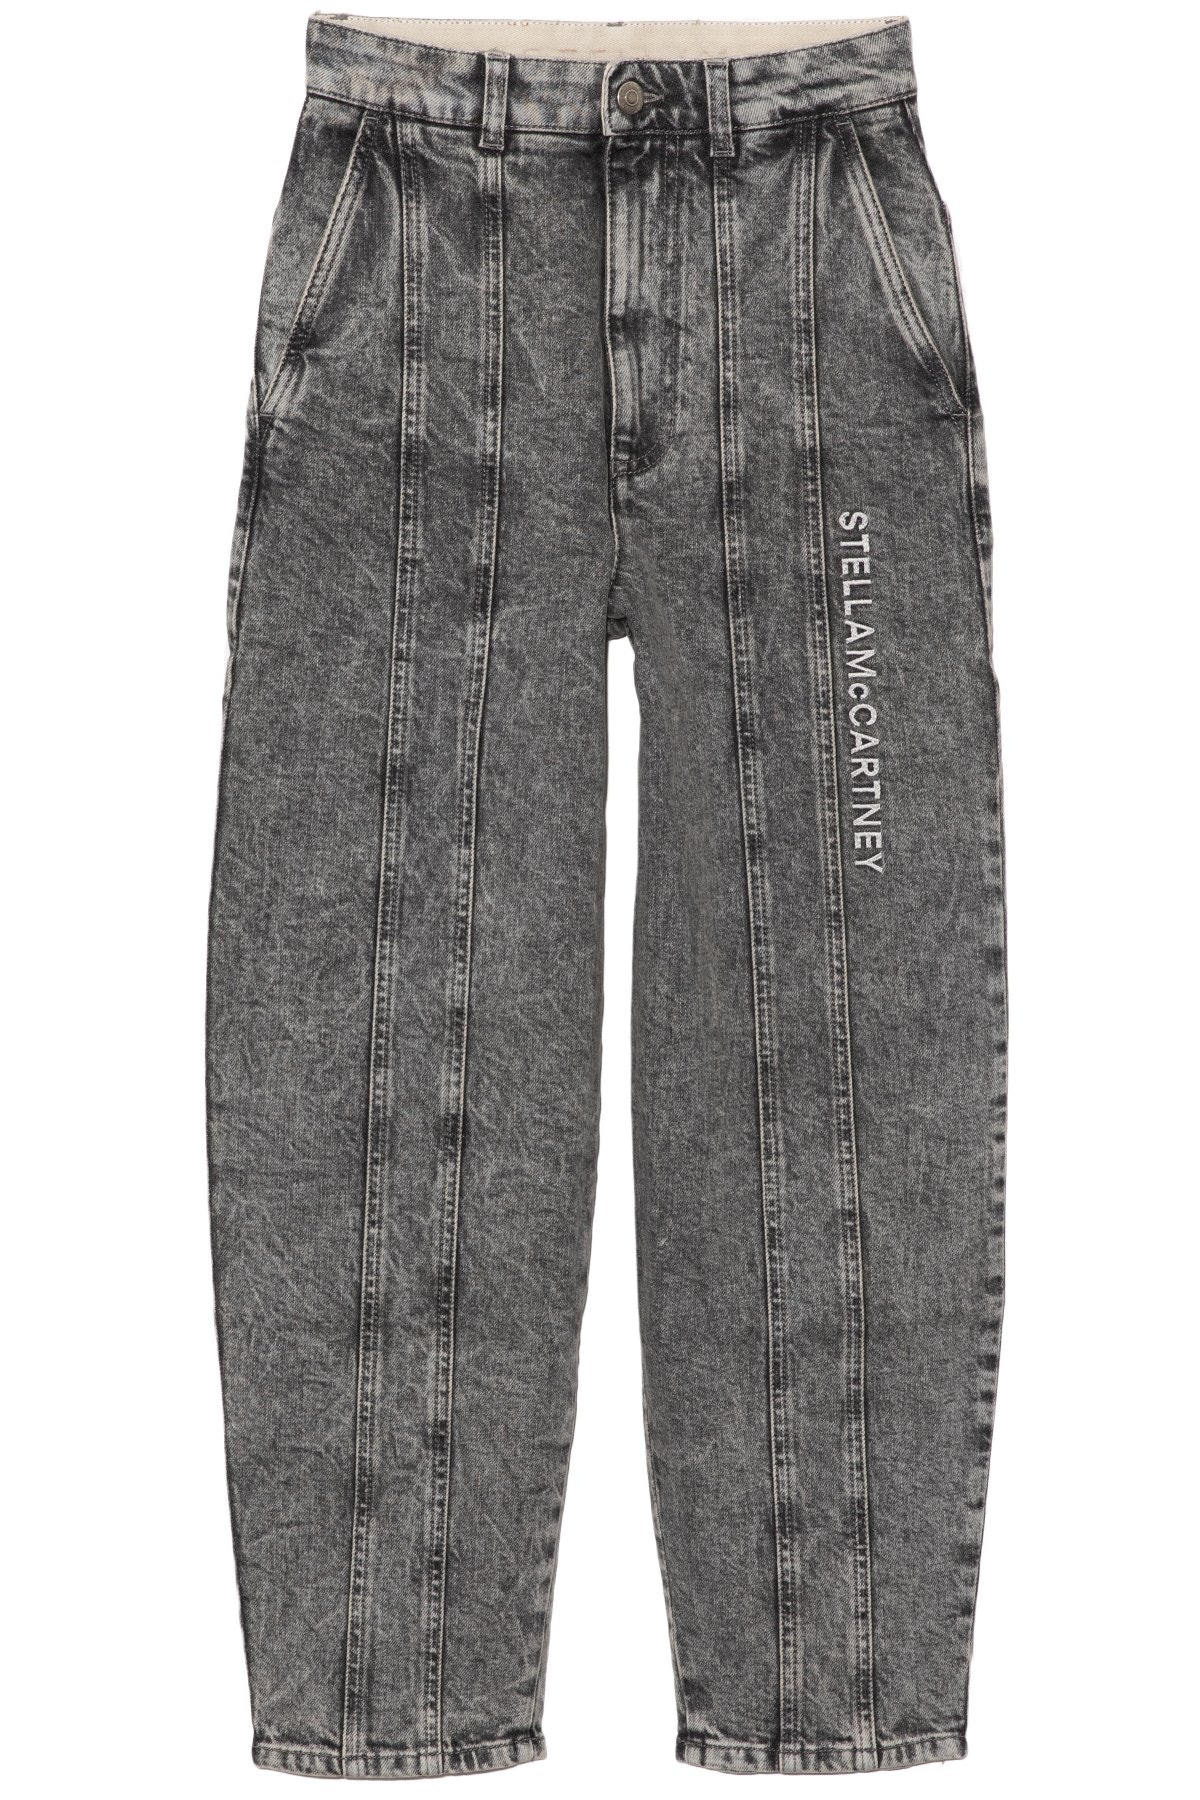 Embroidered Logo Trousers in Grey Galaxy Wash: image 1